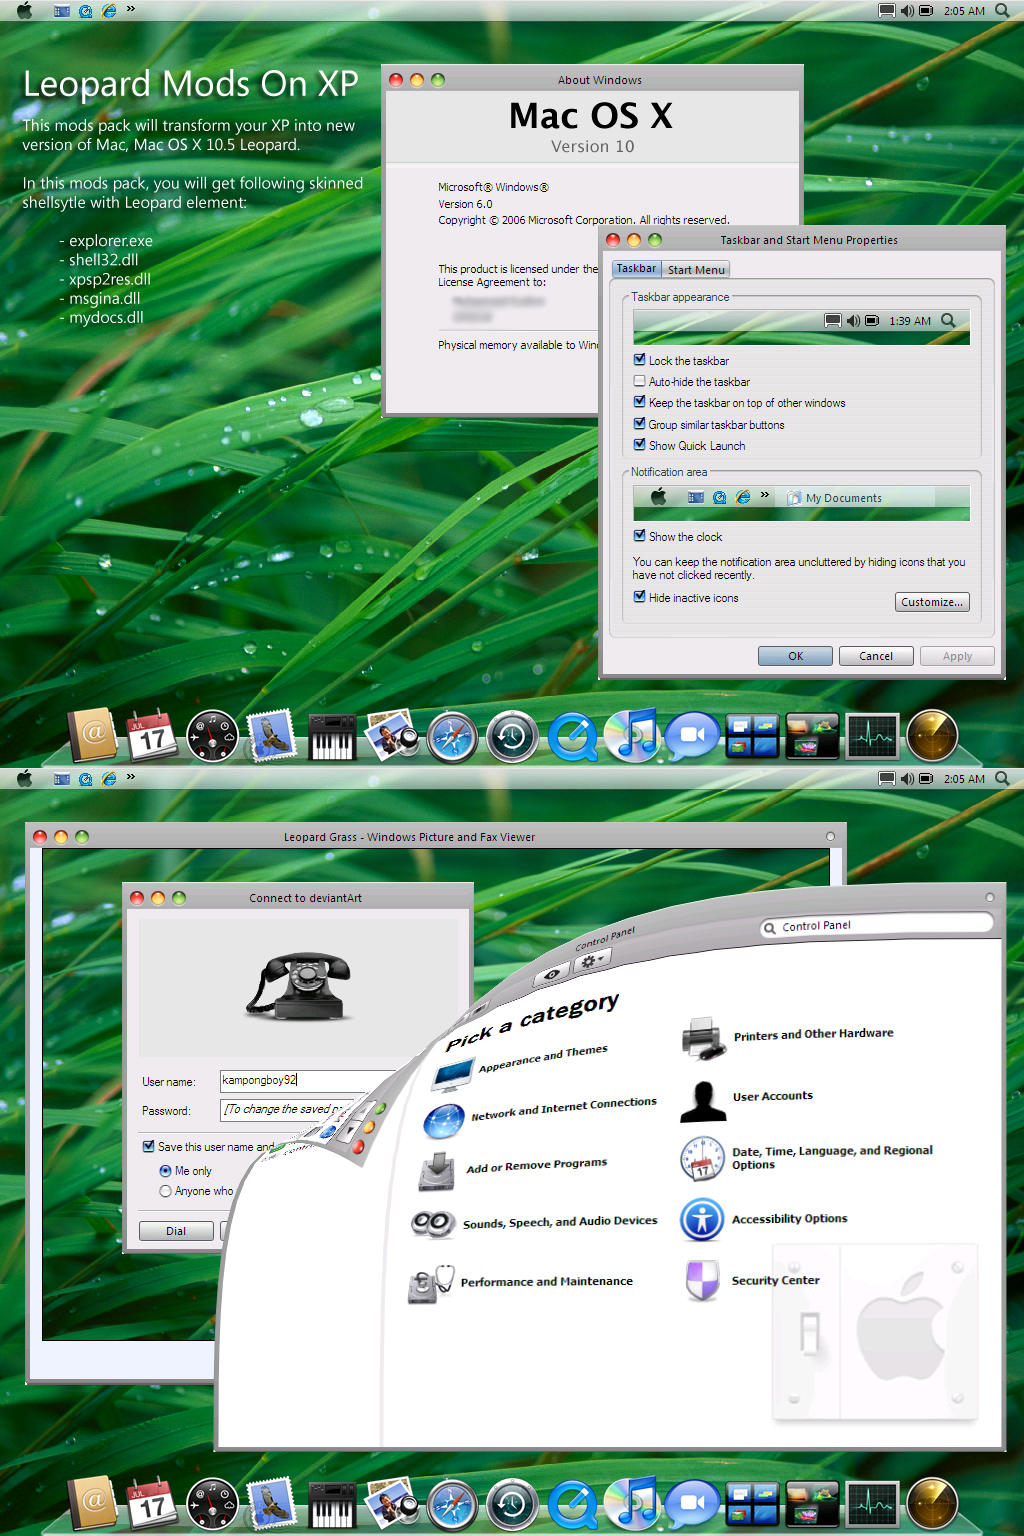 Going from Windows XP to Mac